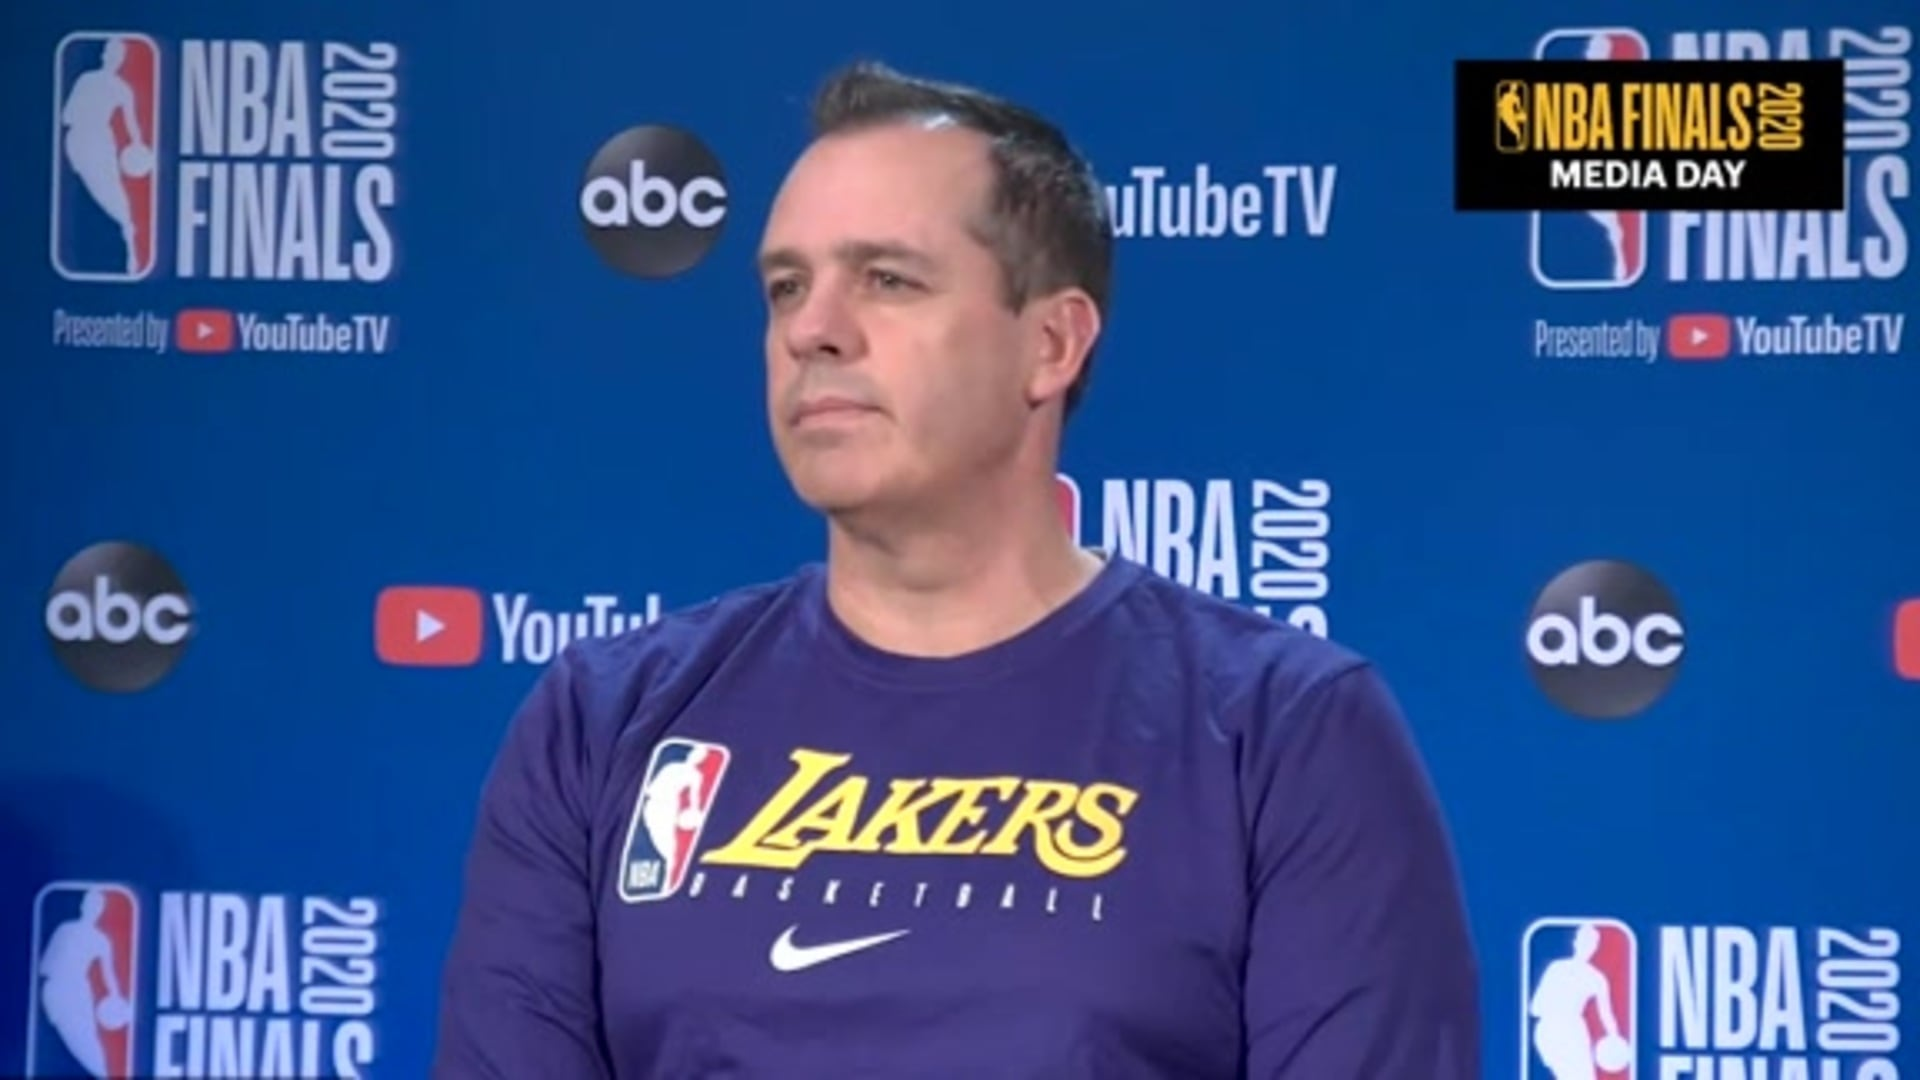 NBA Finals Media Day: Frank Vogel